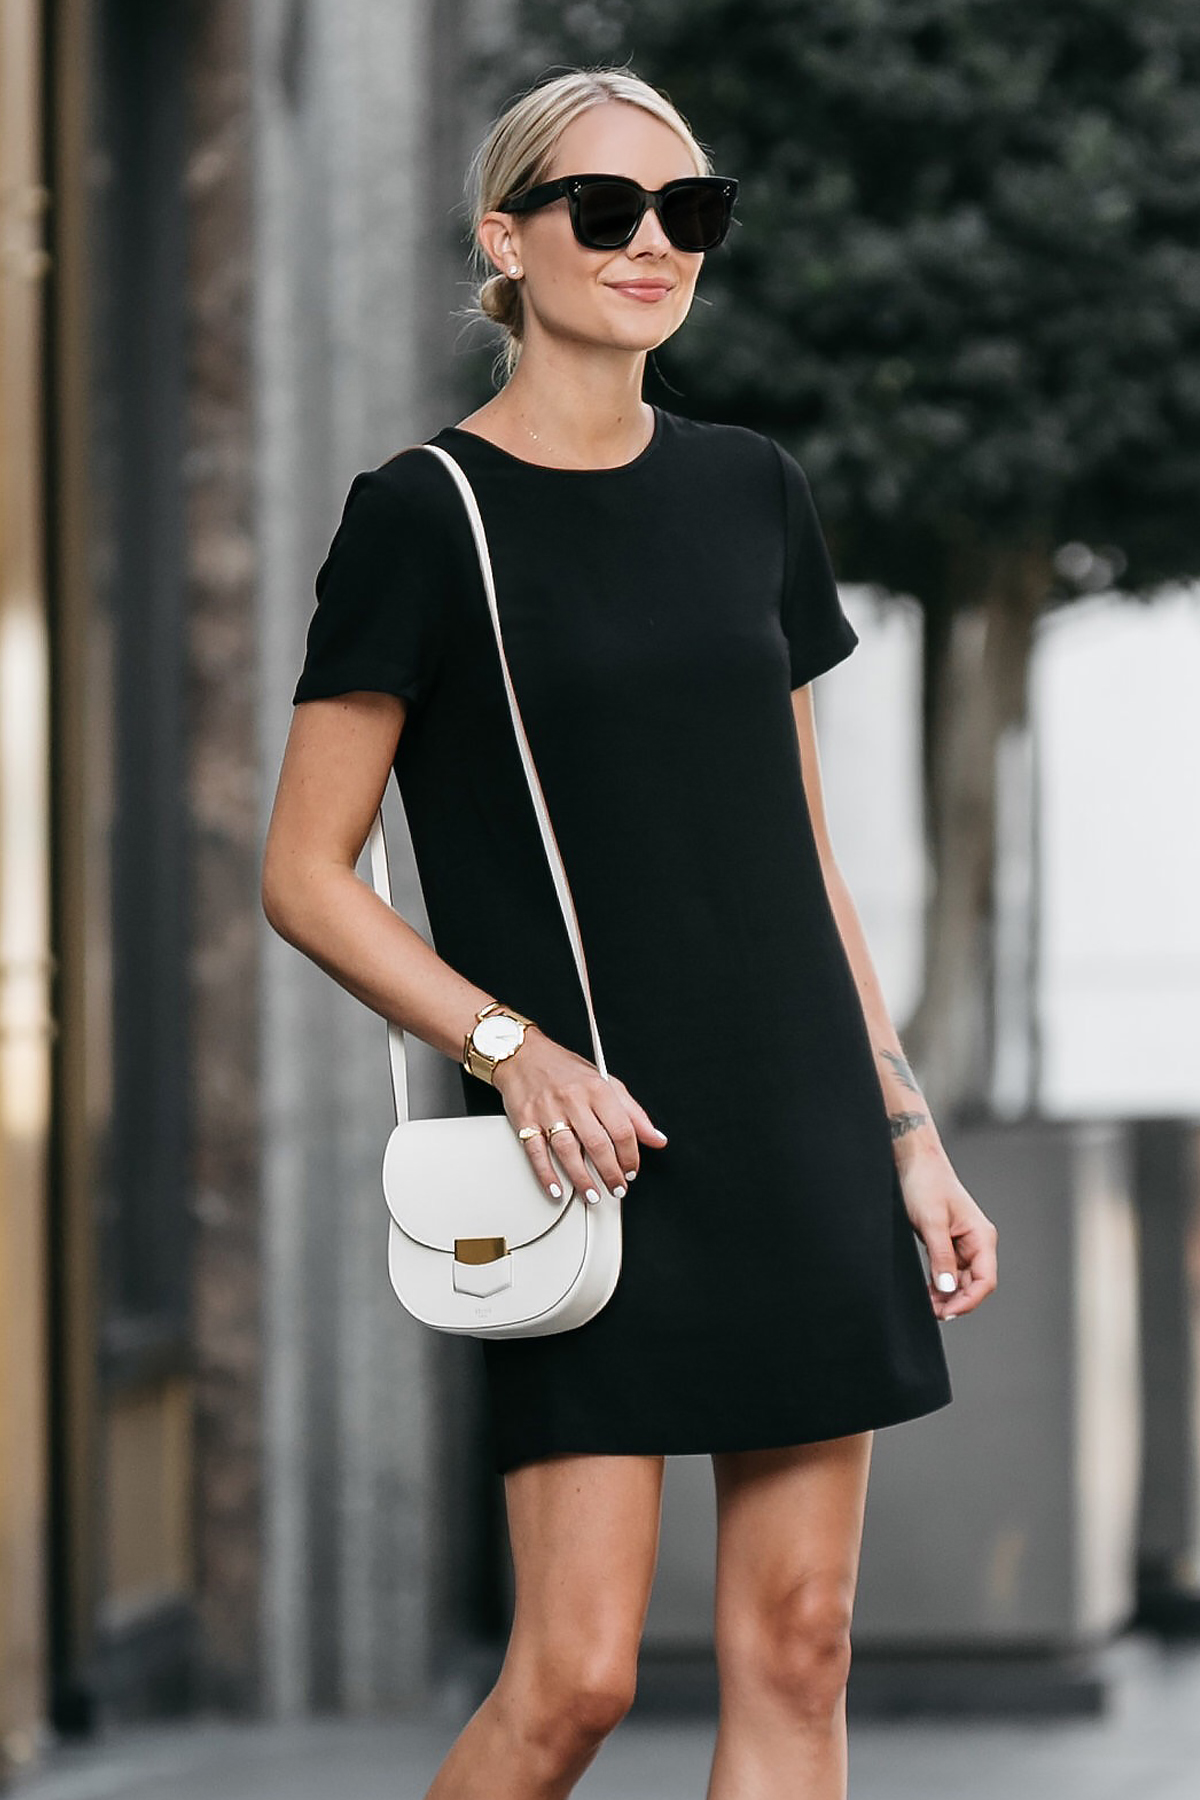 Blonde Wearing Nordstrom Black Shift Dress Outfit Celine White Trotteur Handbag Fashion Jackson Dallas Blogger Fashion Blogger Street Style